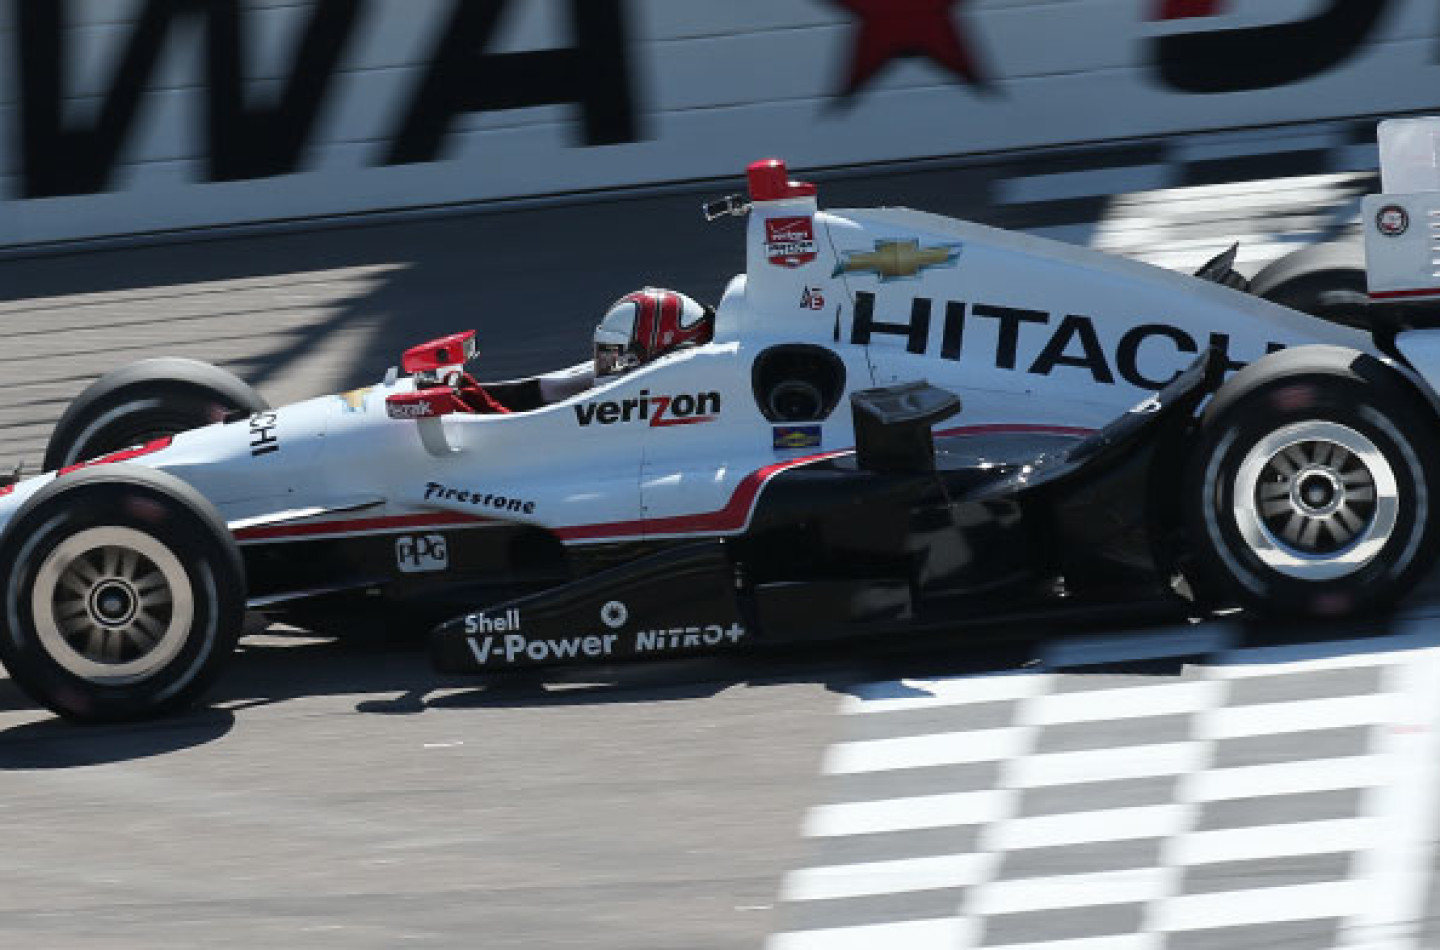 Indycar 2015, in Iowa la pole va a Castroneves